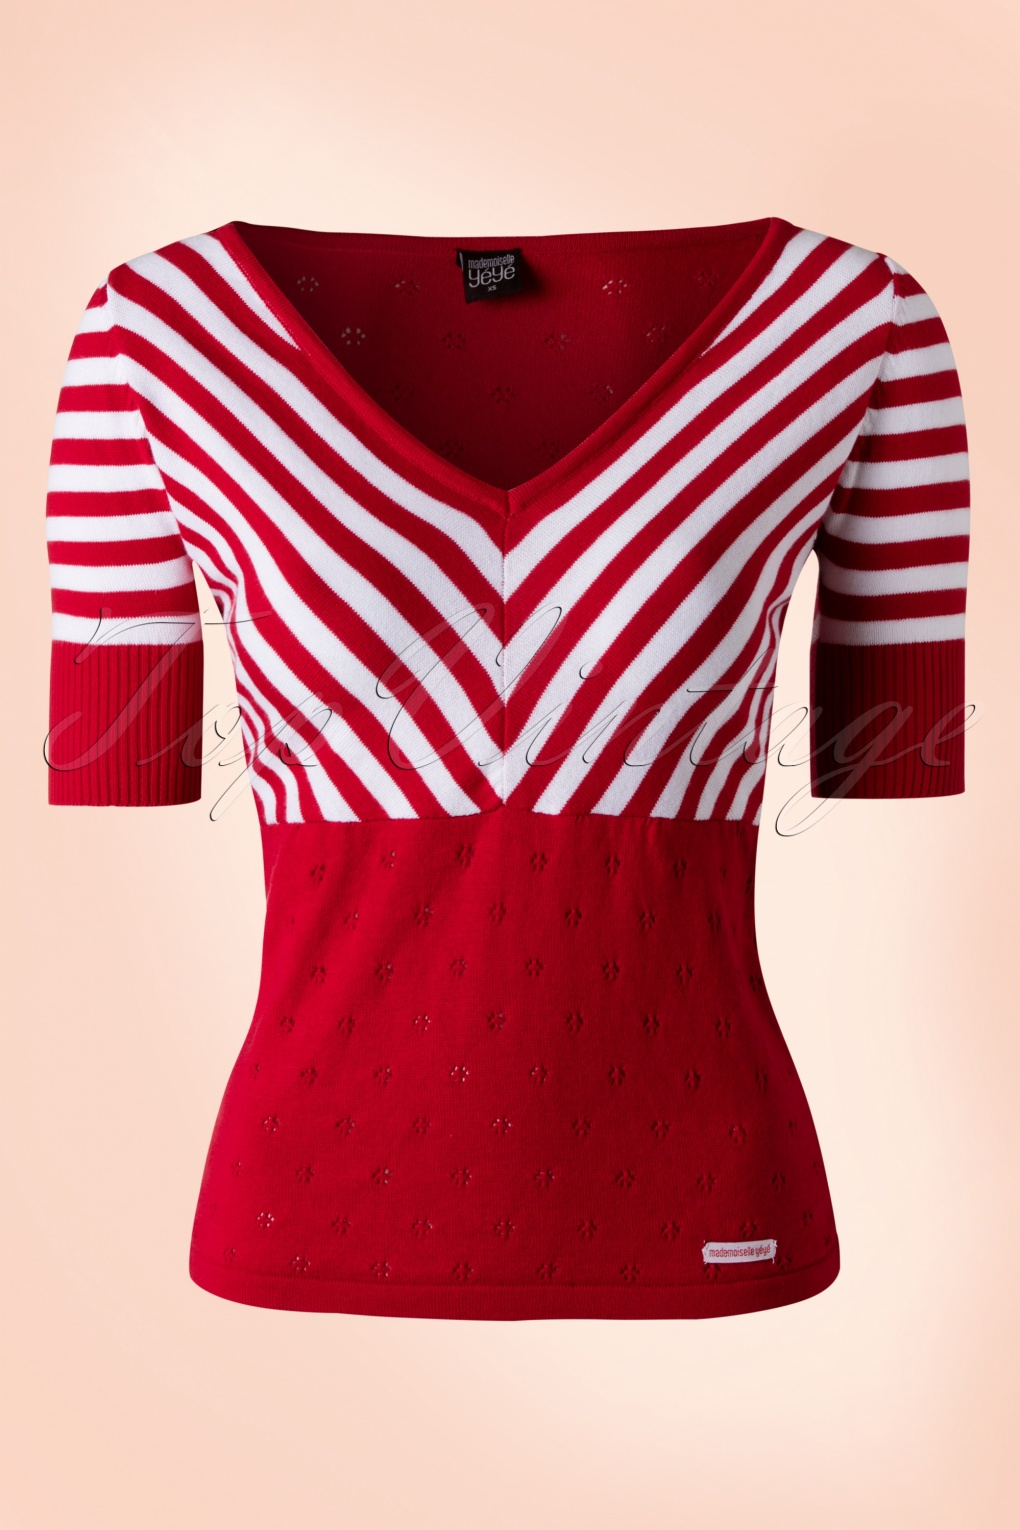 Striped Boatneck Bow Top - in Red and White by Steady Striped top with a flattering boat neck collar. Stripes are set off by the contrast trim cuff and neckline and bow detail.